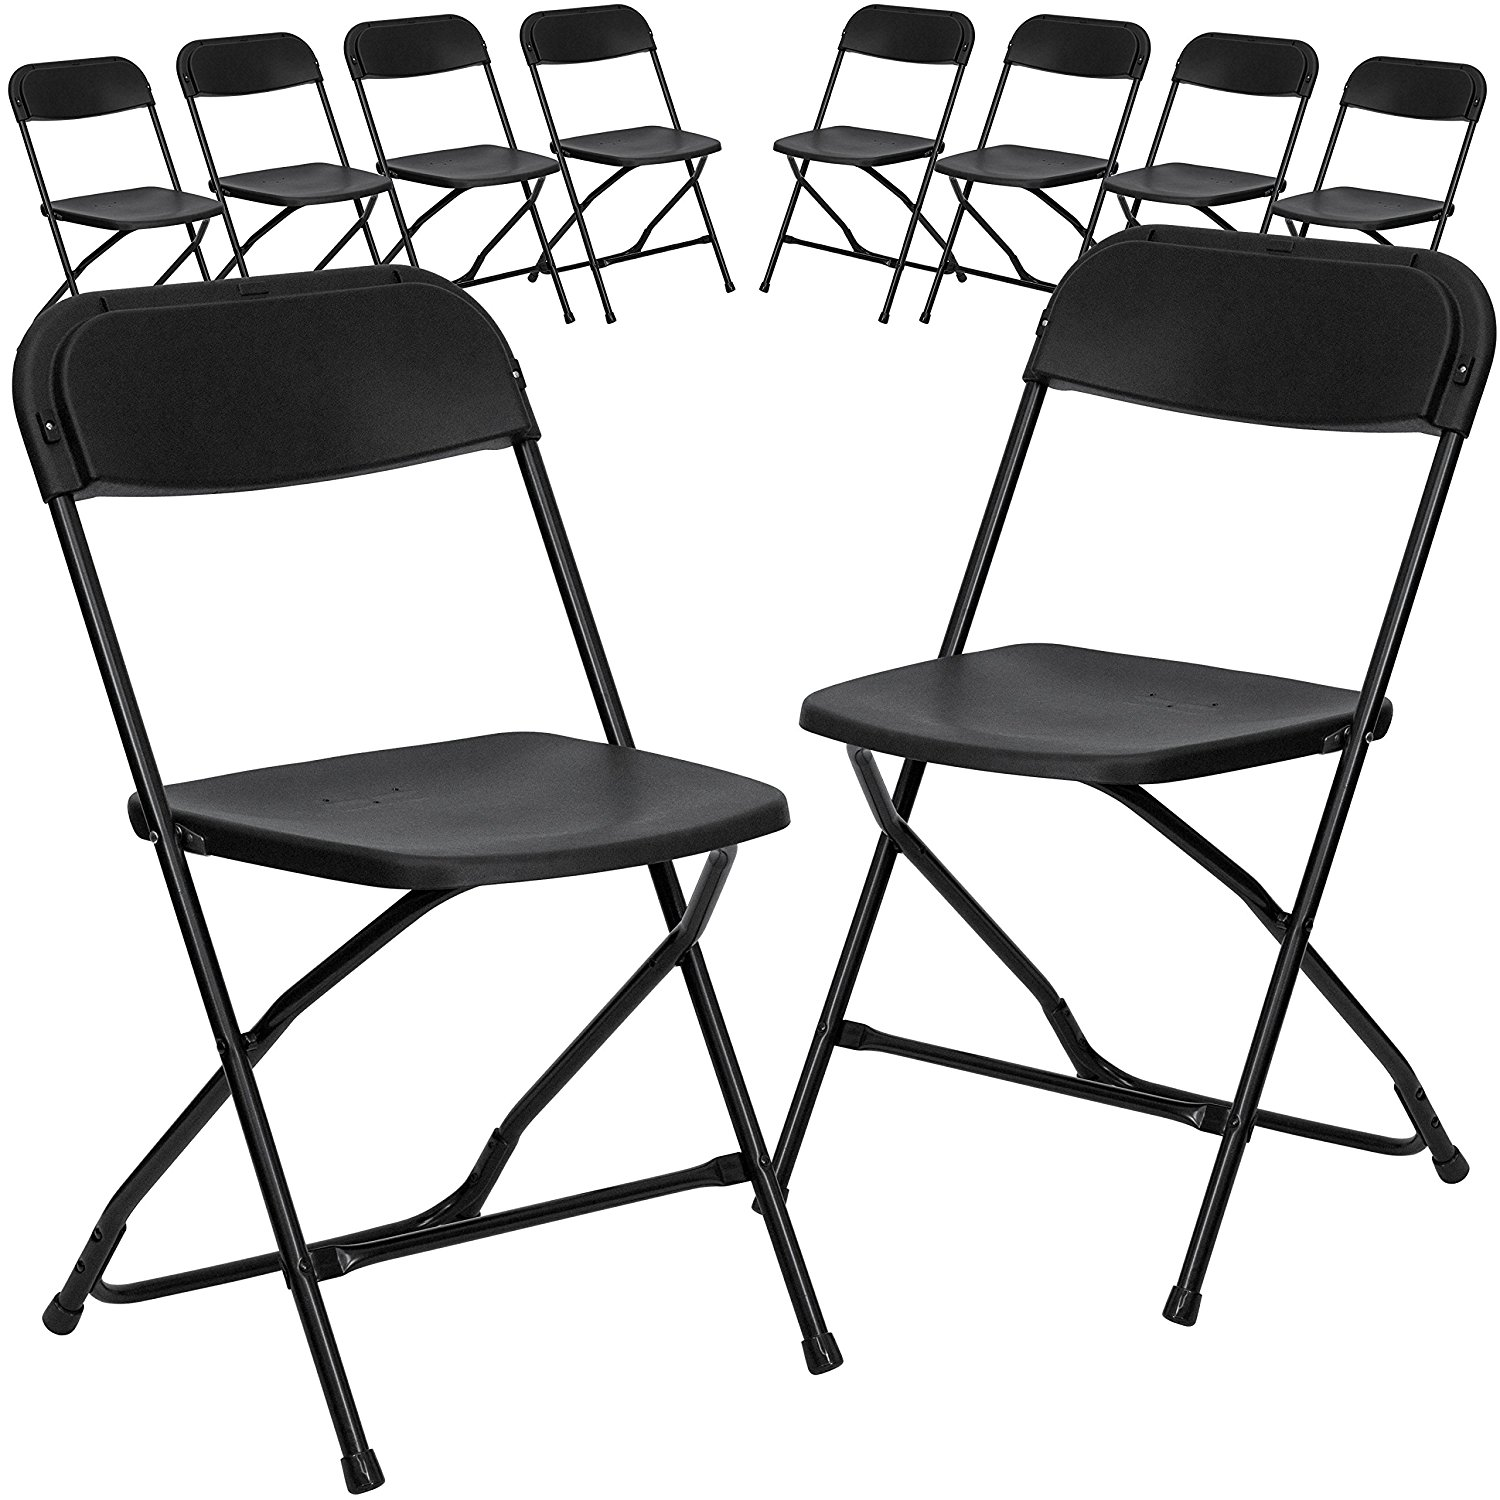 Folding Chairs For Rent A Folding Chair Affordable Plastic Black For Rent Party